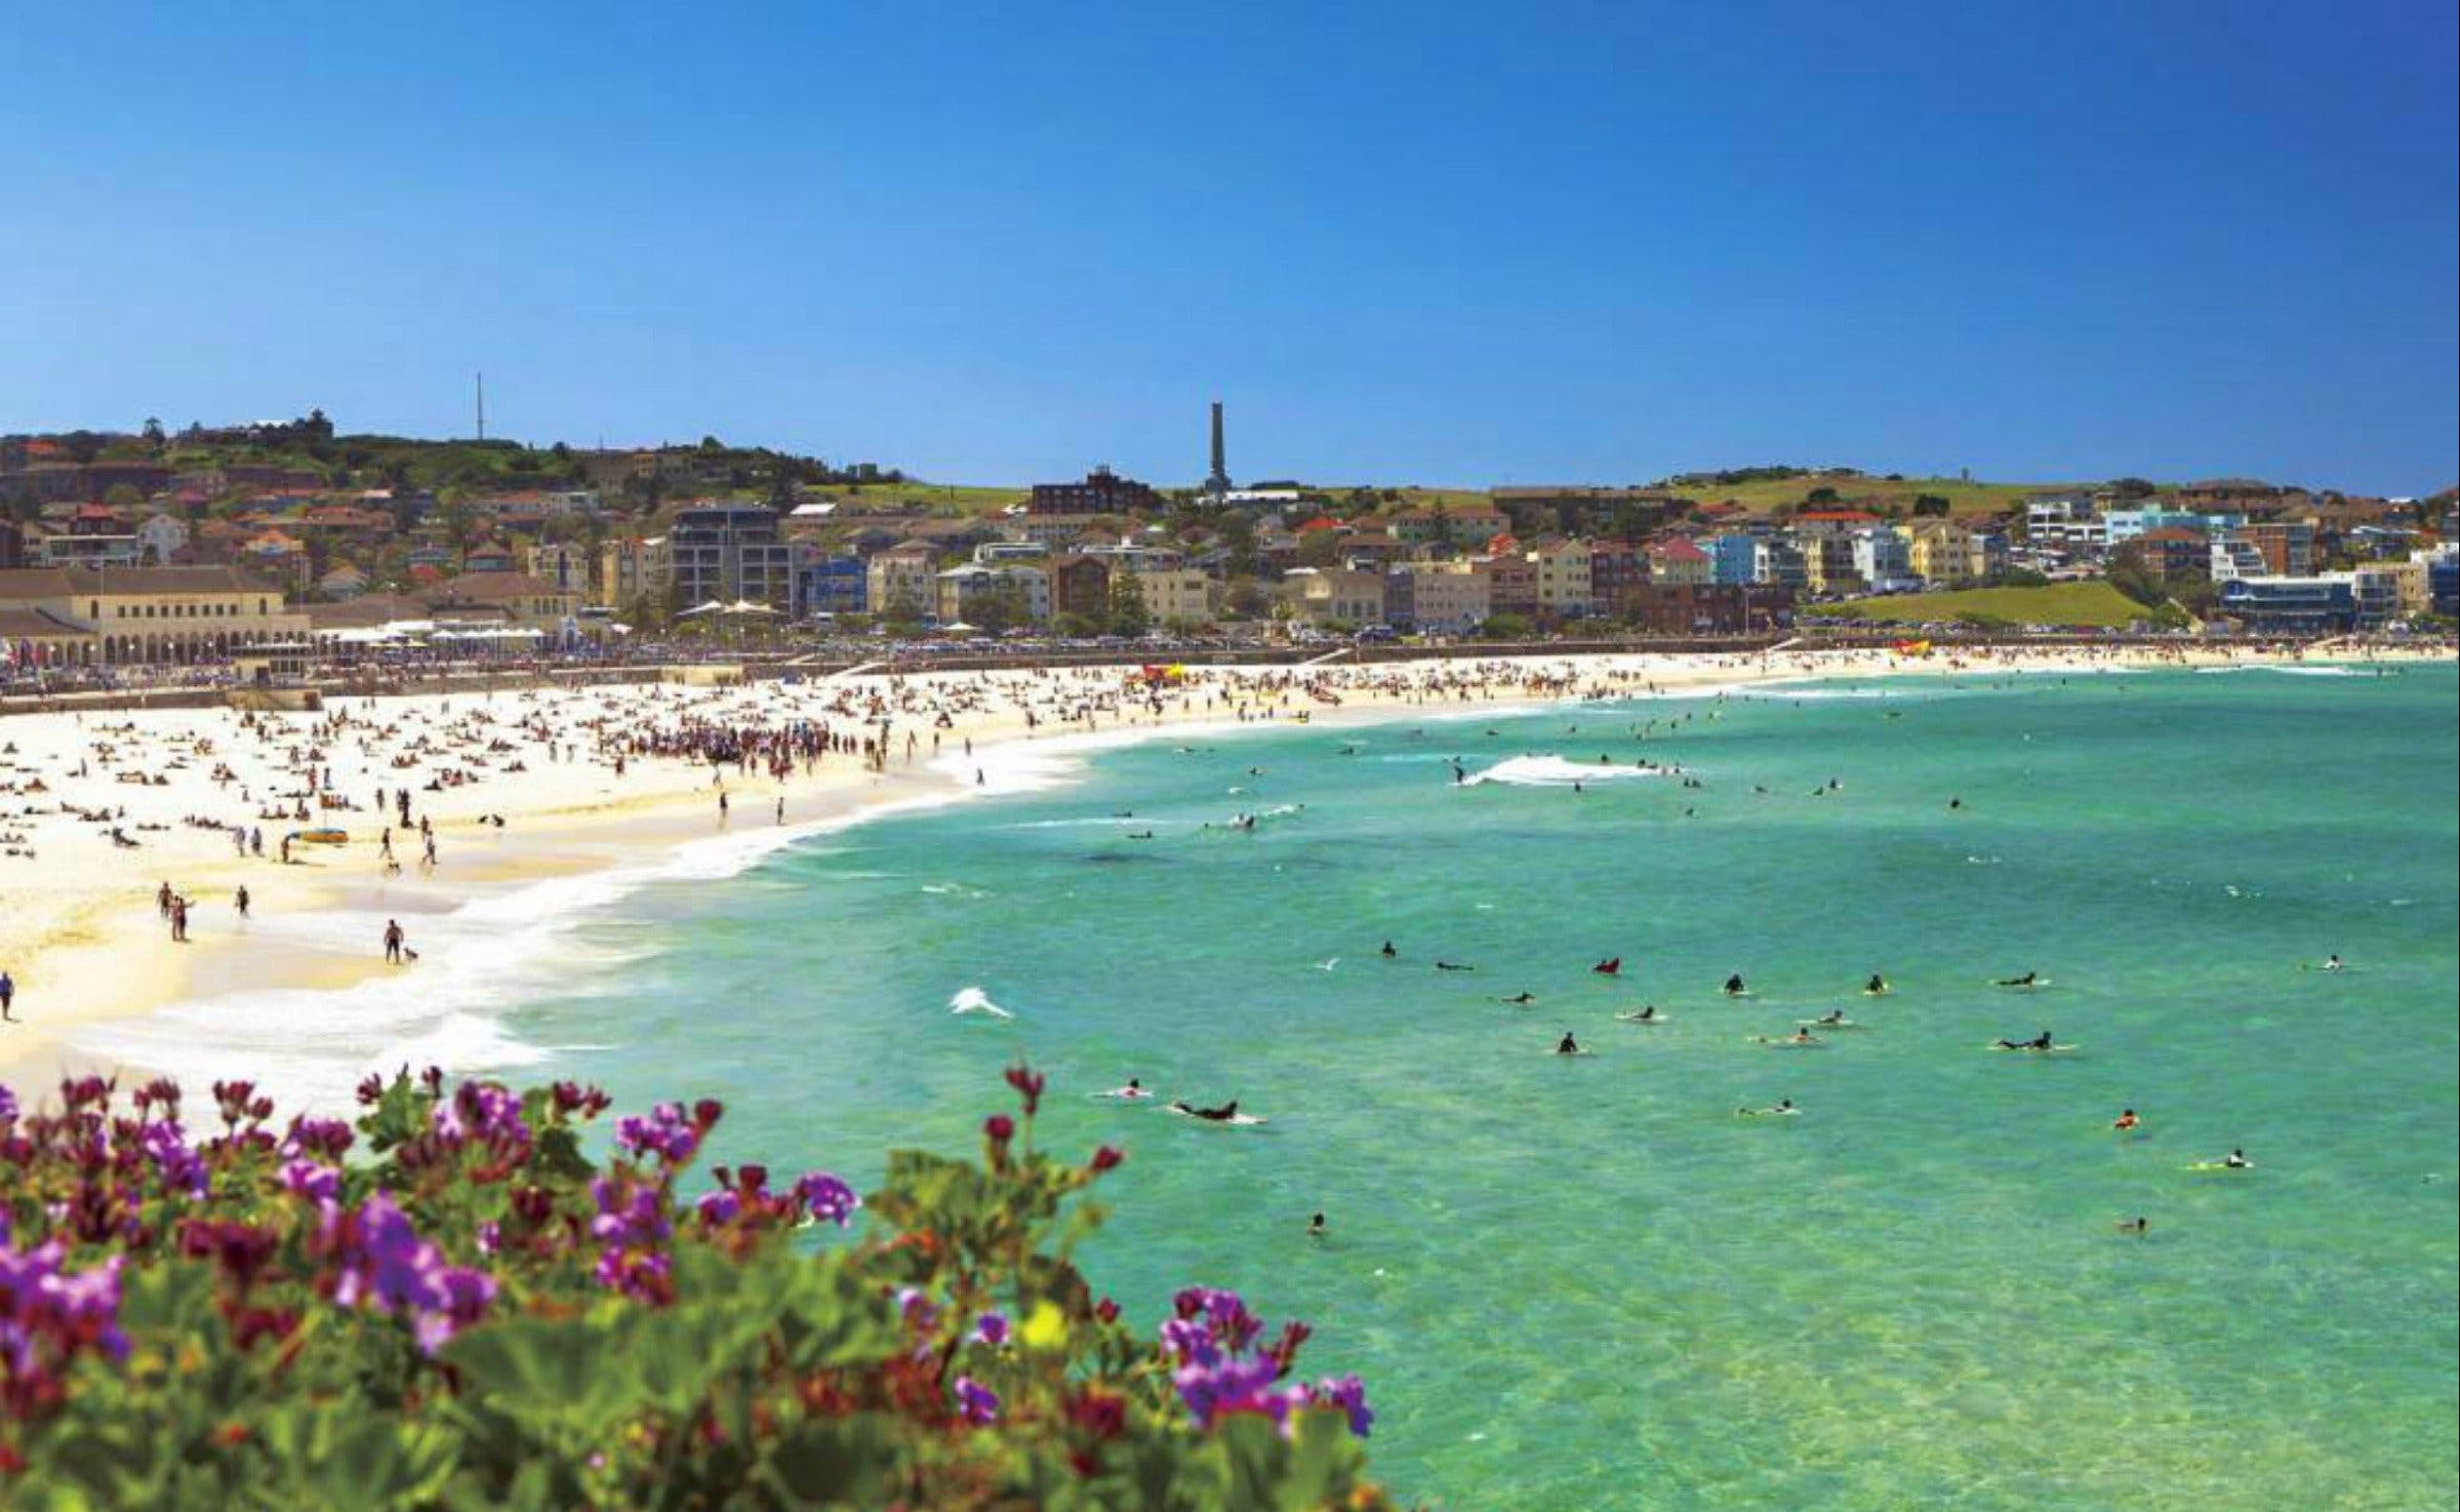 Bondi - Find Attractions